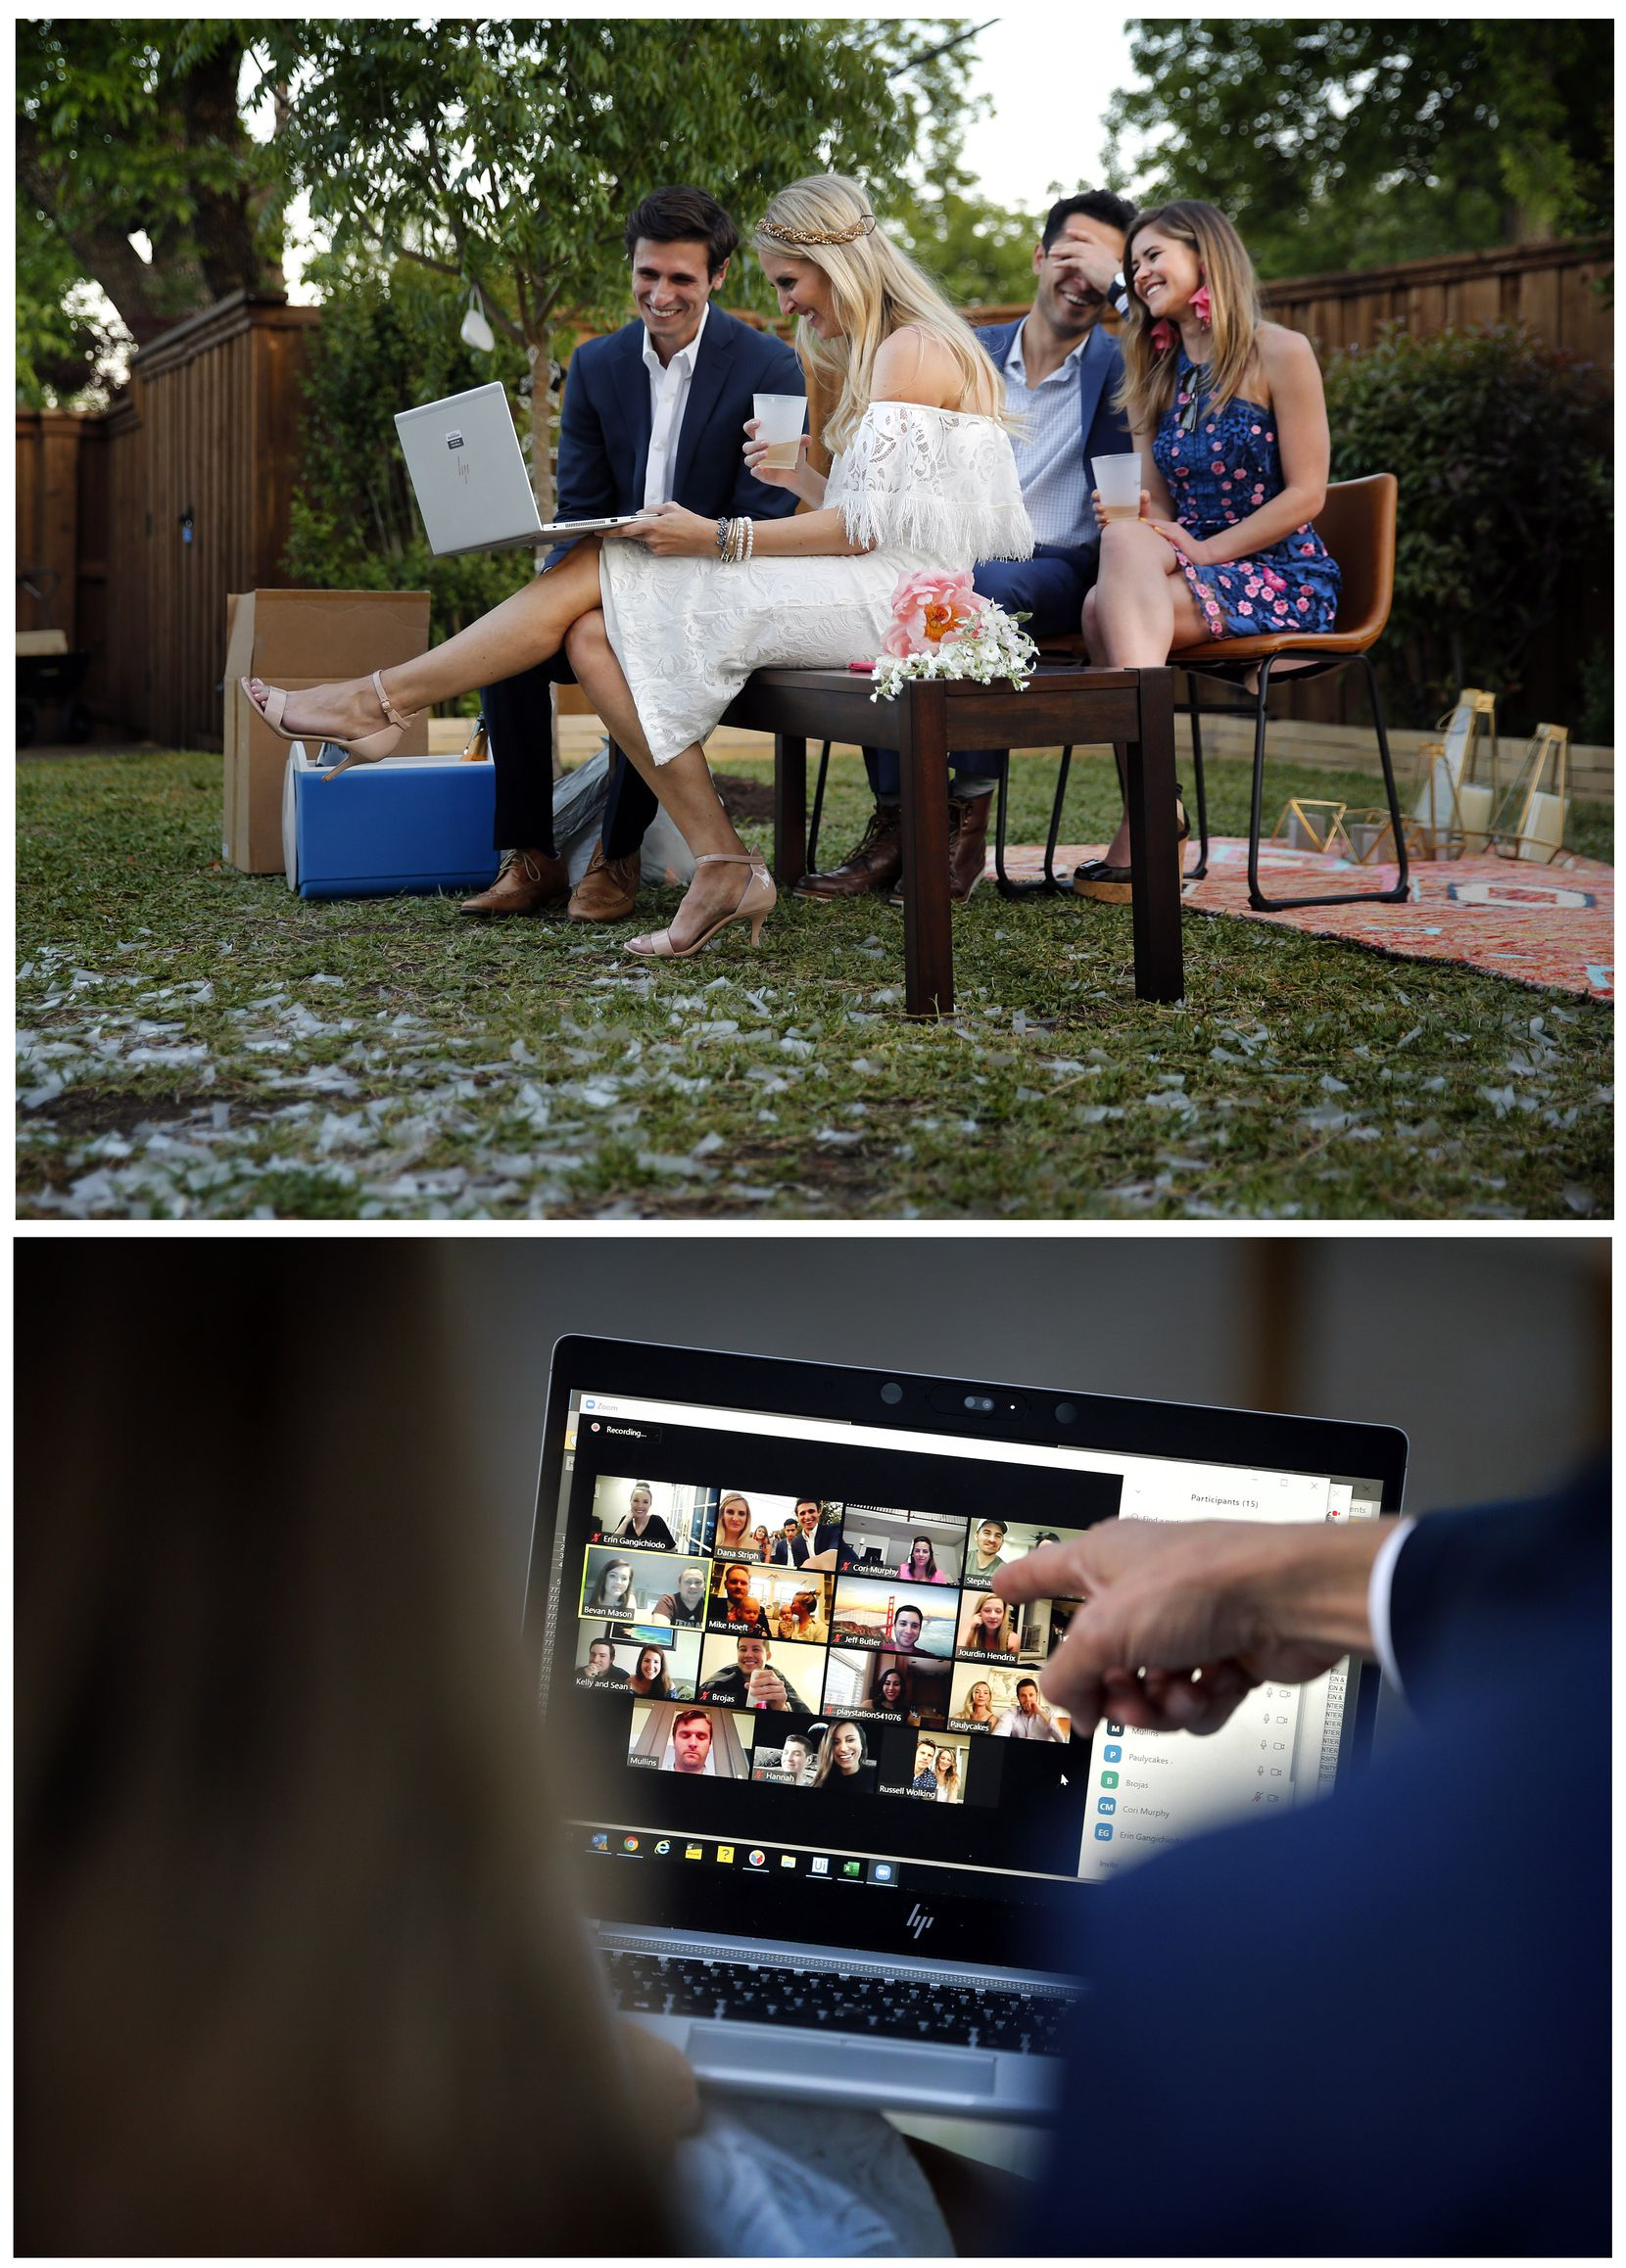 After their backyard wedding, the Houshians joined extended family and friends on a video chat as they drank champagne. Joining them was the officiate and close friend, Kayvon Rashidi, and his girlfriend, Ashley Morgan.